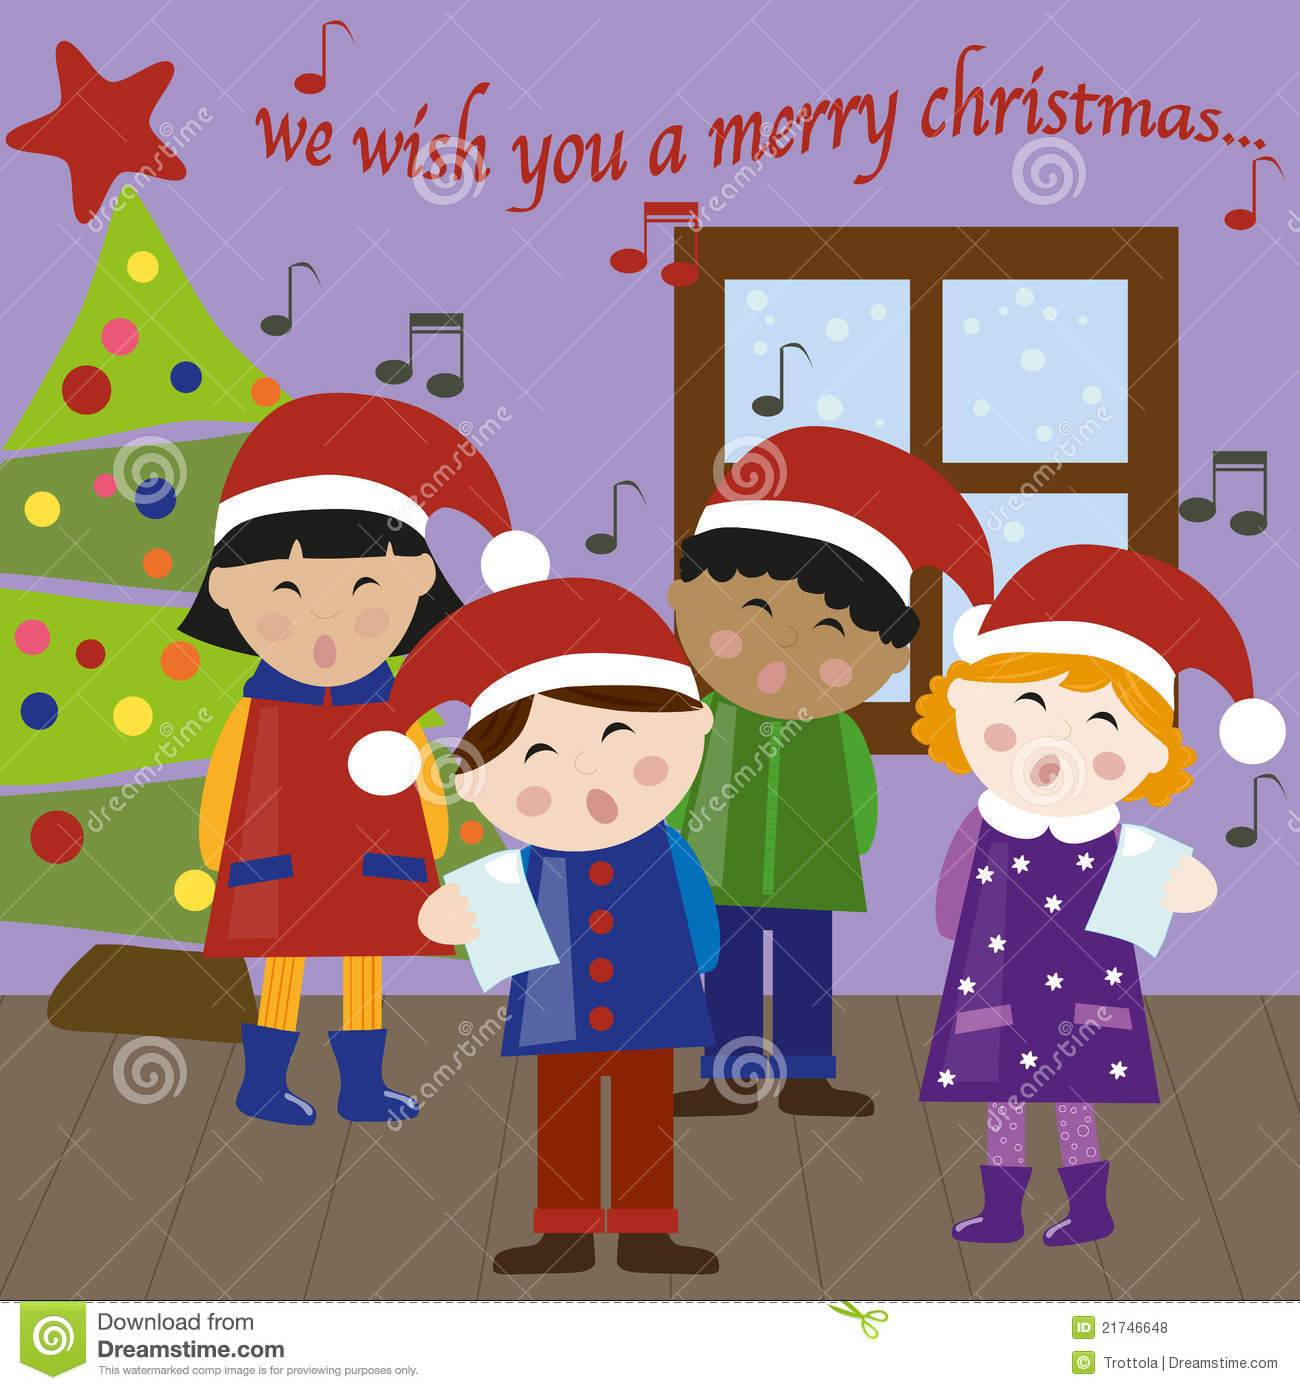 Christmas carols vector stock vector. Illustration of girl - 21746648